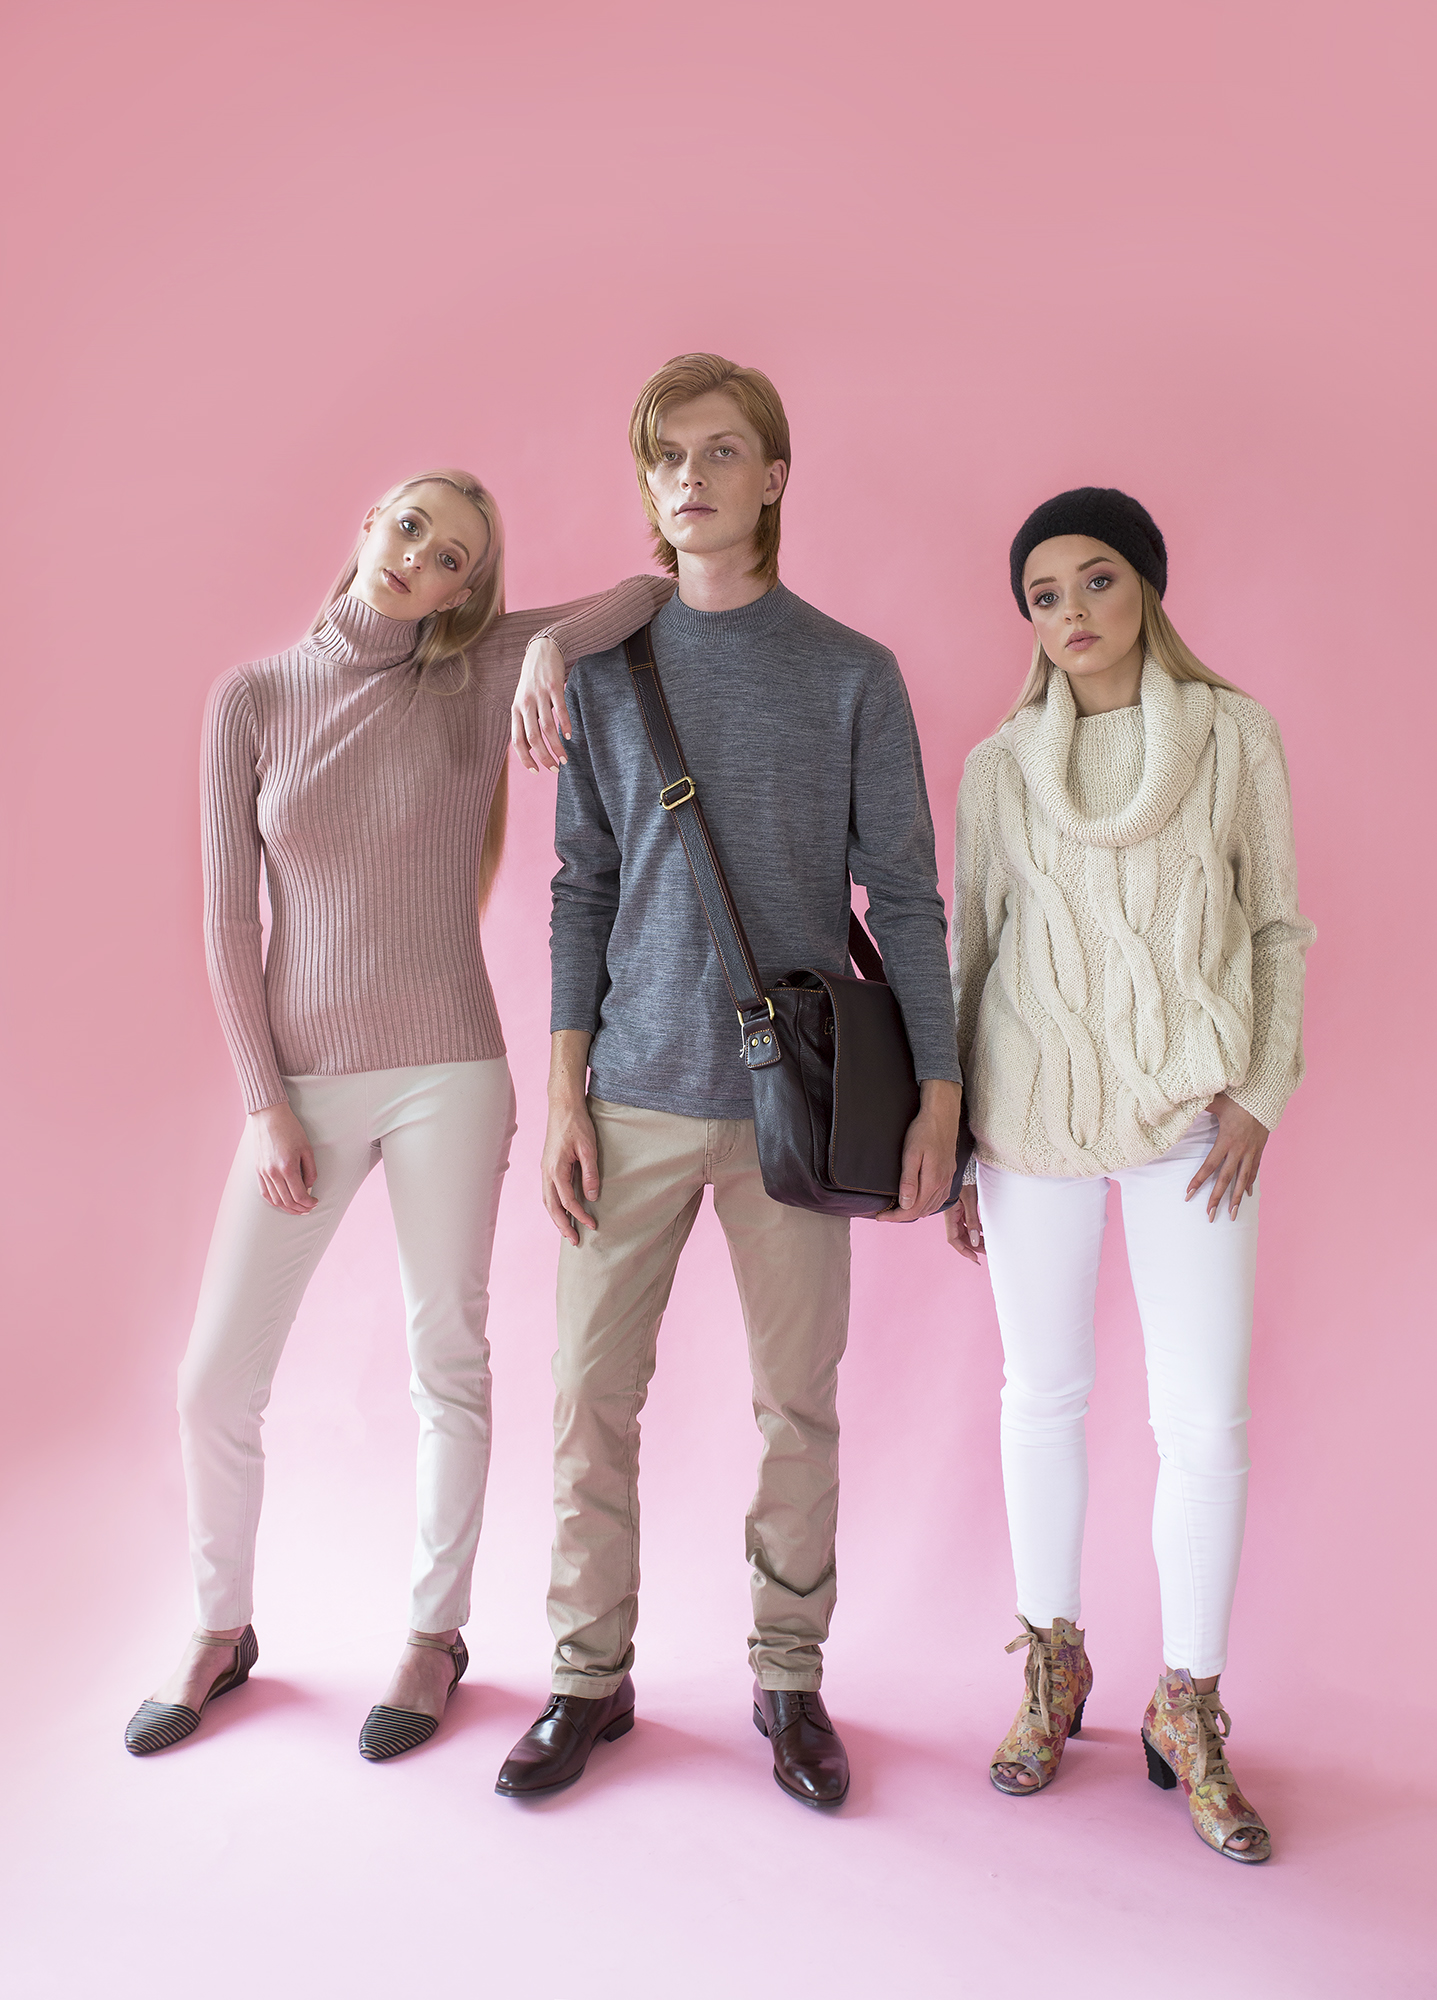 Lucy wears knit top and pants from Beetees and shoes from Tango's. Jesse is dressed in clothes from Nelson Tailors Menswear (including footwear and bag). Tegan wears Cruellas Natural Fibre Boutique wool jersey and beanie, jeans from Just Jeans and footwear from Tango's.